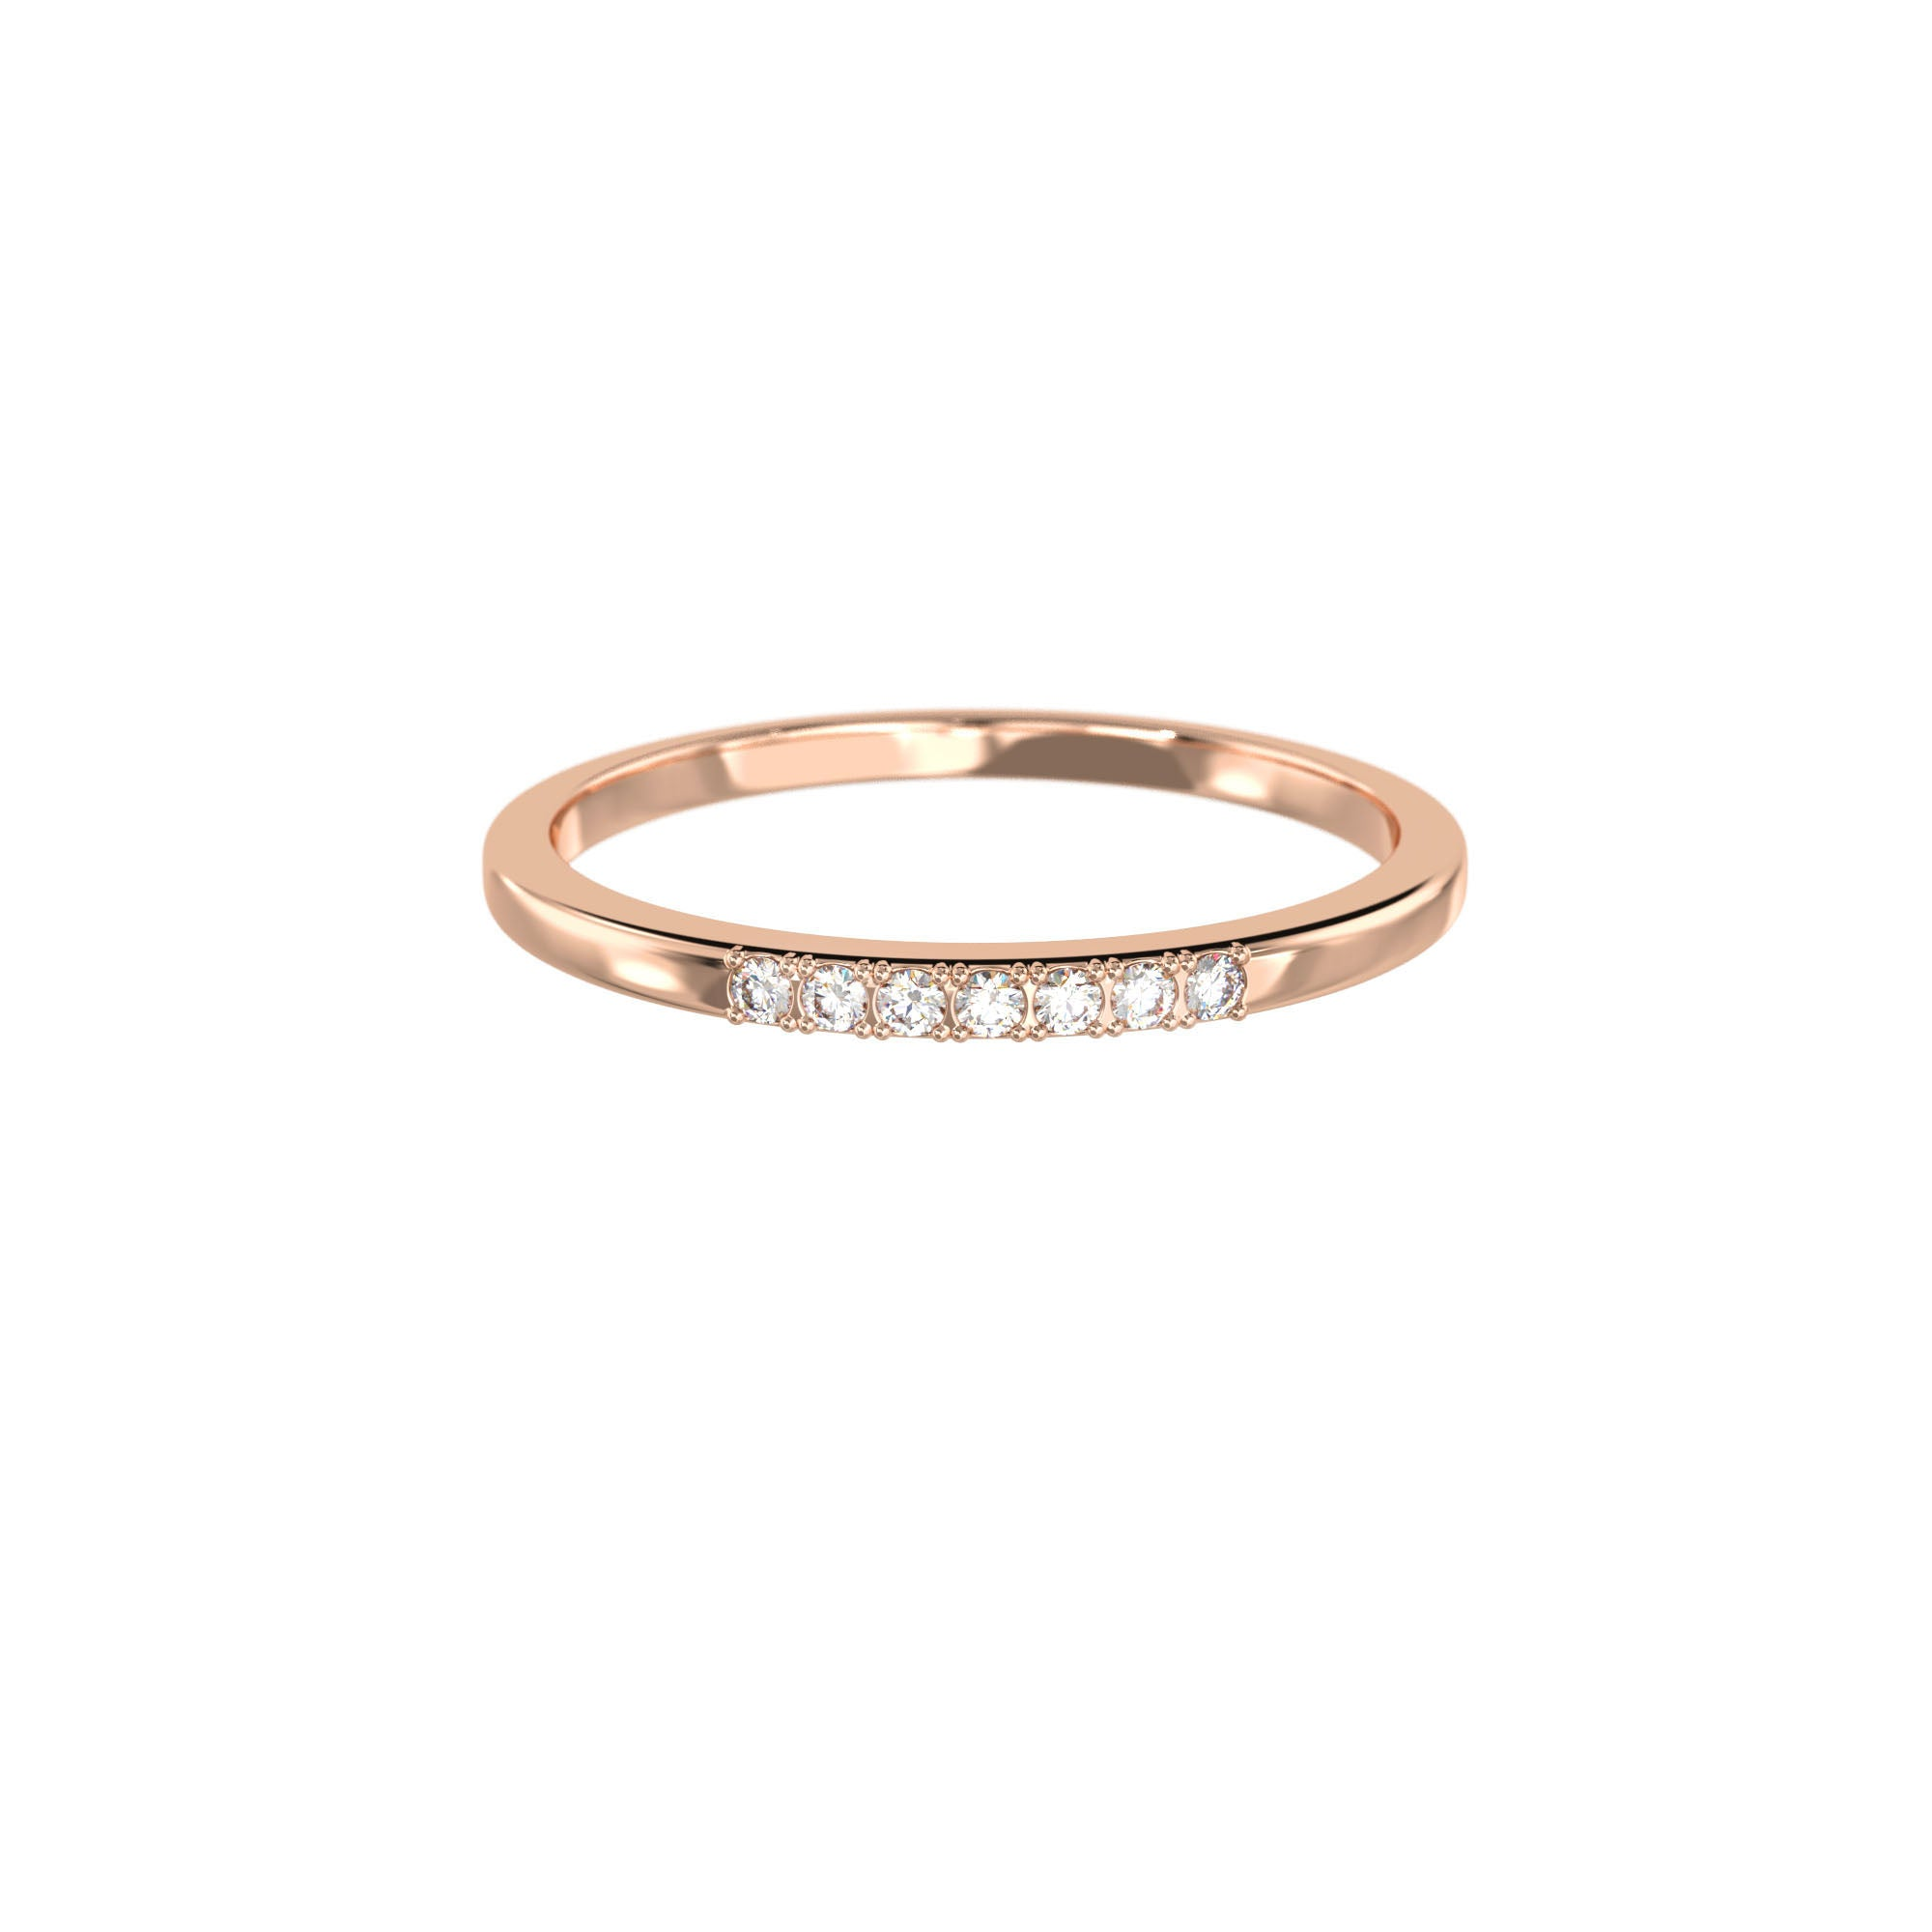 925 Silver Classic Series Ring - Esther (White zirconia) - Rose Gold Plated